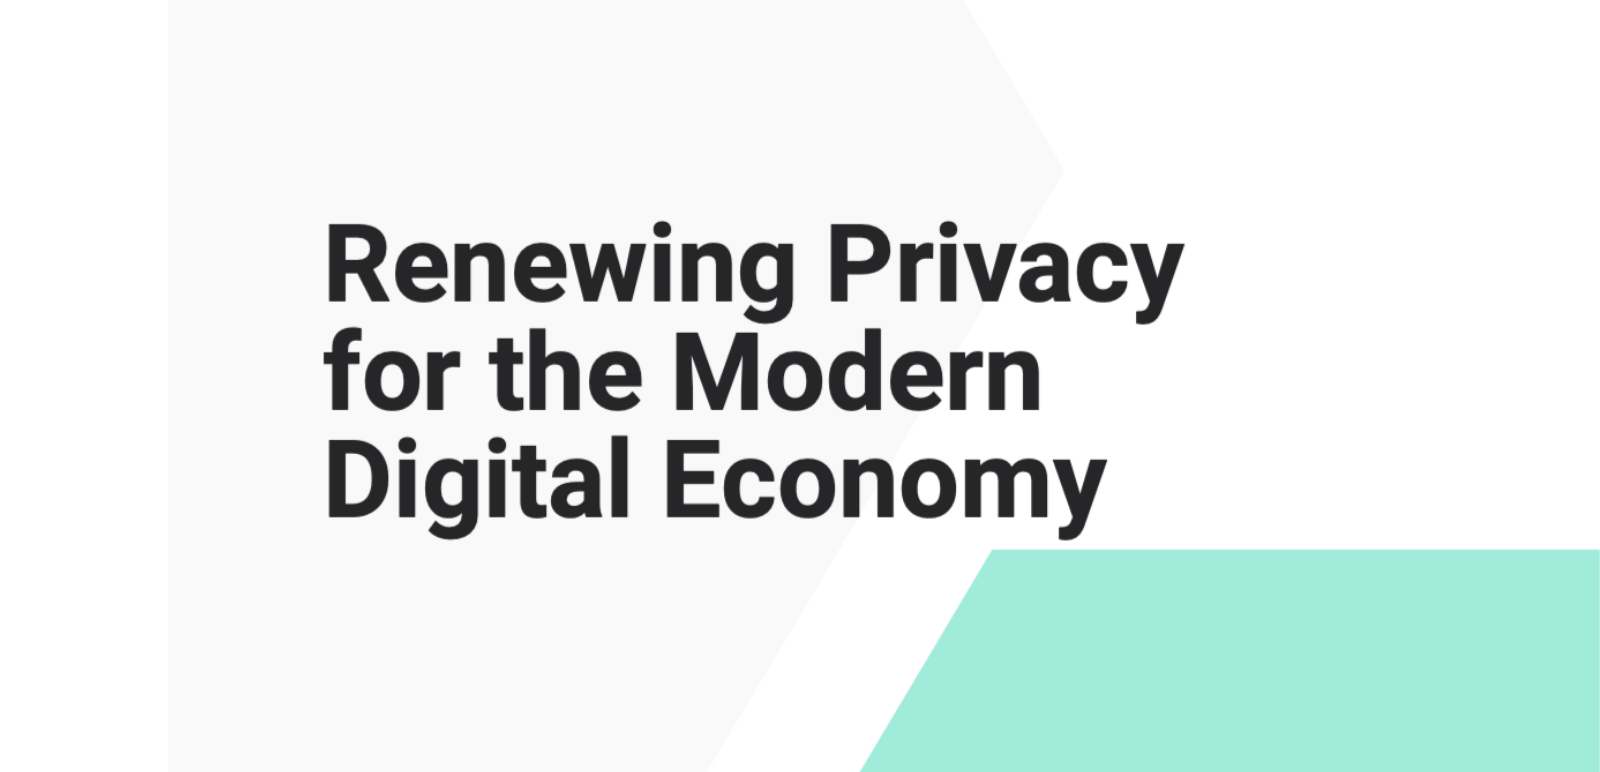 ICTC's Response to Ontario's Public Consultation on Privacy Protection: New Report